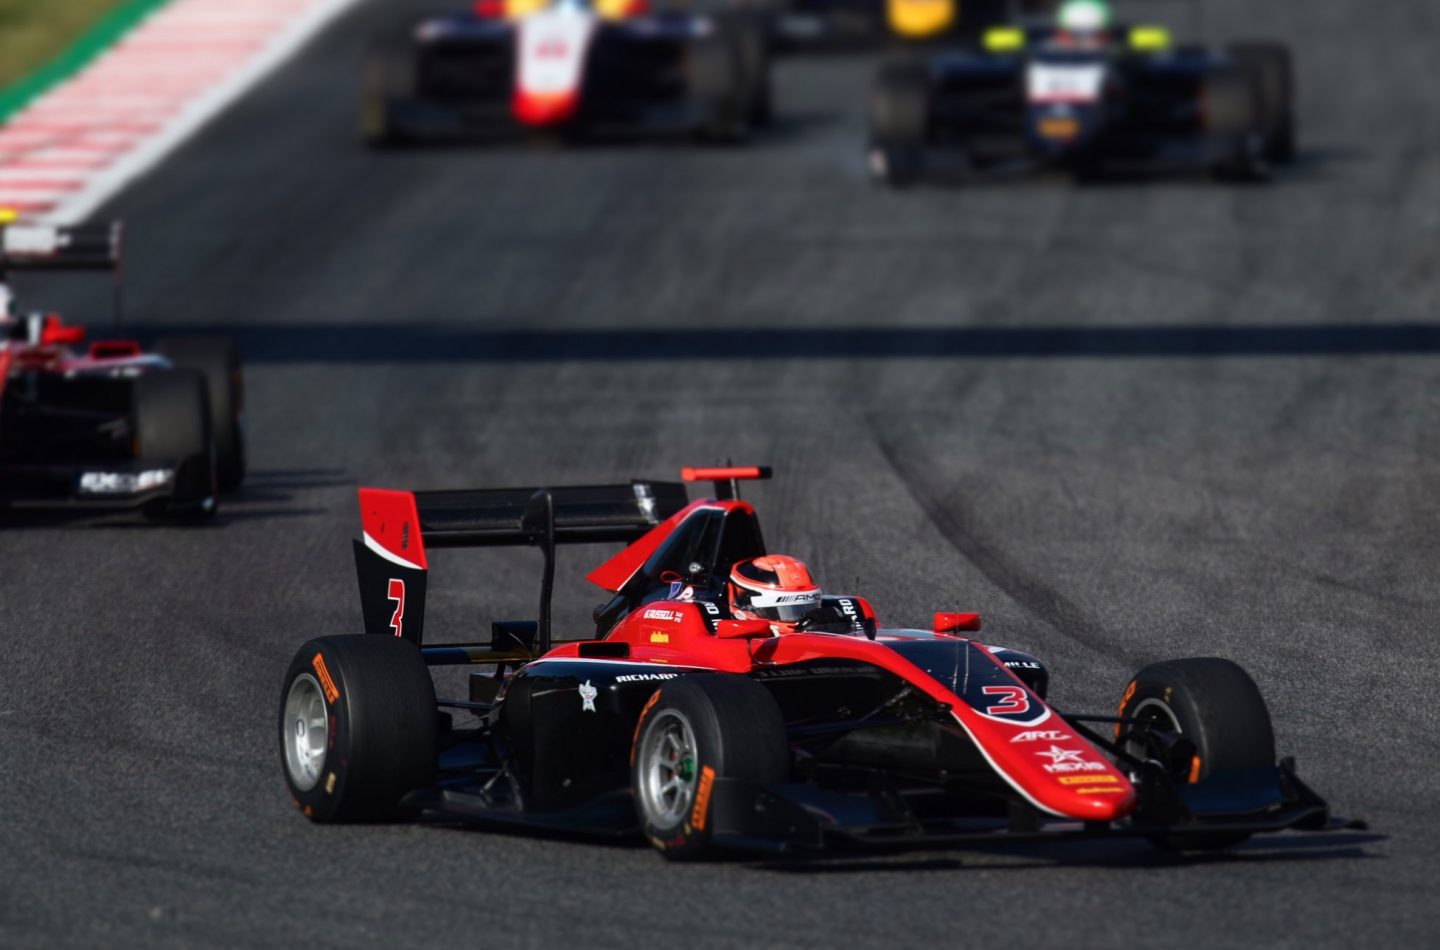 GP3 | GP Austria, Russell in pole, qualifica tiratissima